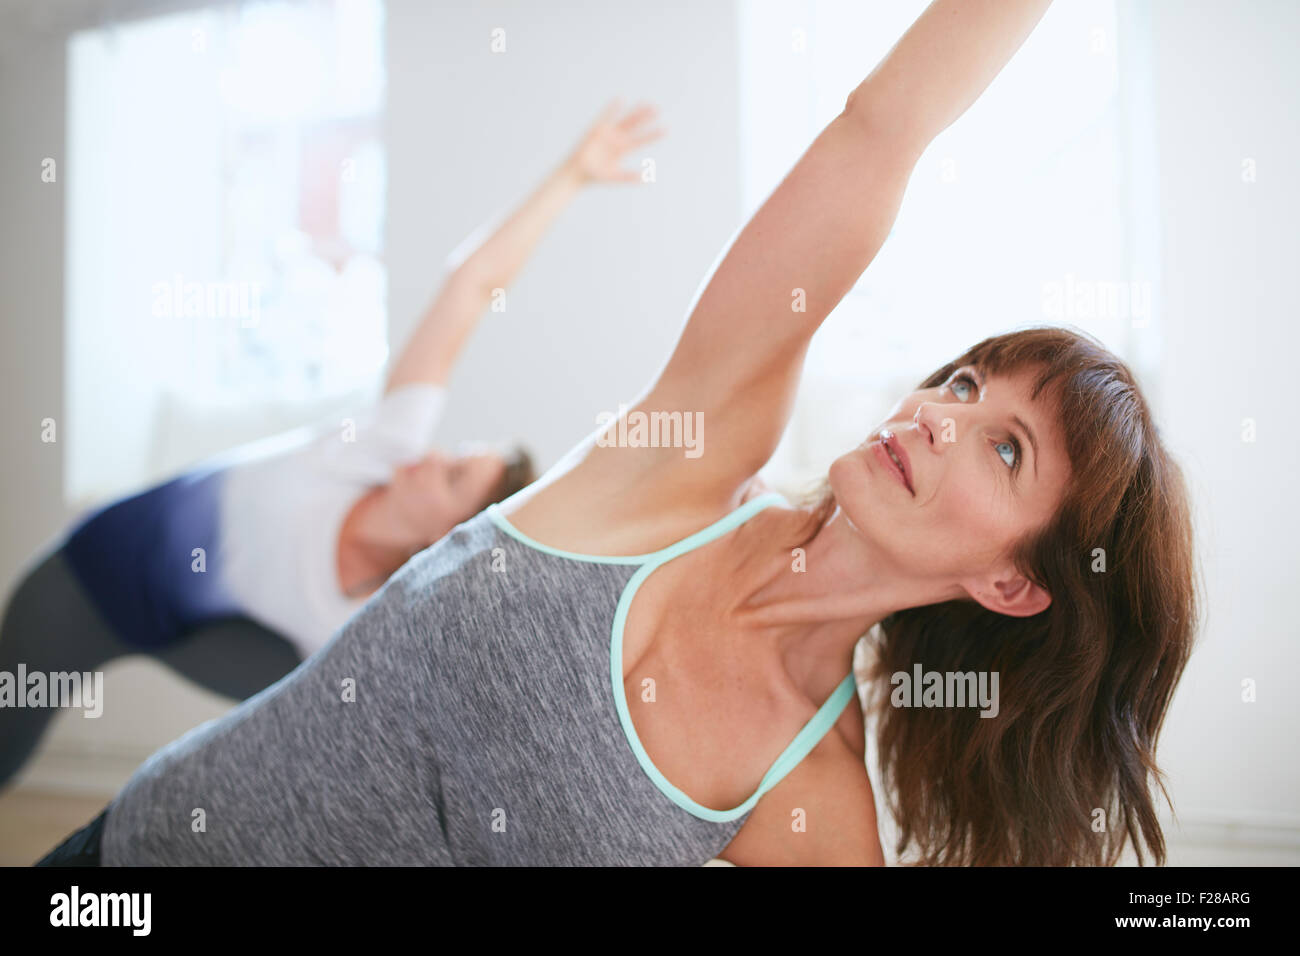 Portrait of mature woman practicing yoga at gym. Fitness female doing Triangle yoga Pose, Trikonasana. - Stock Image